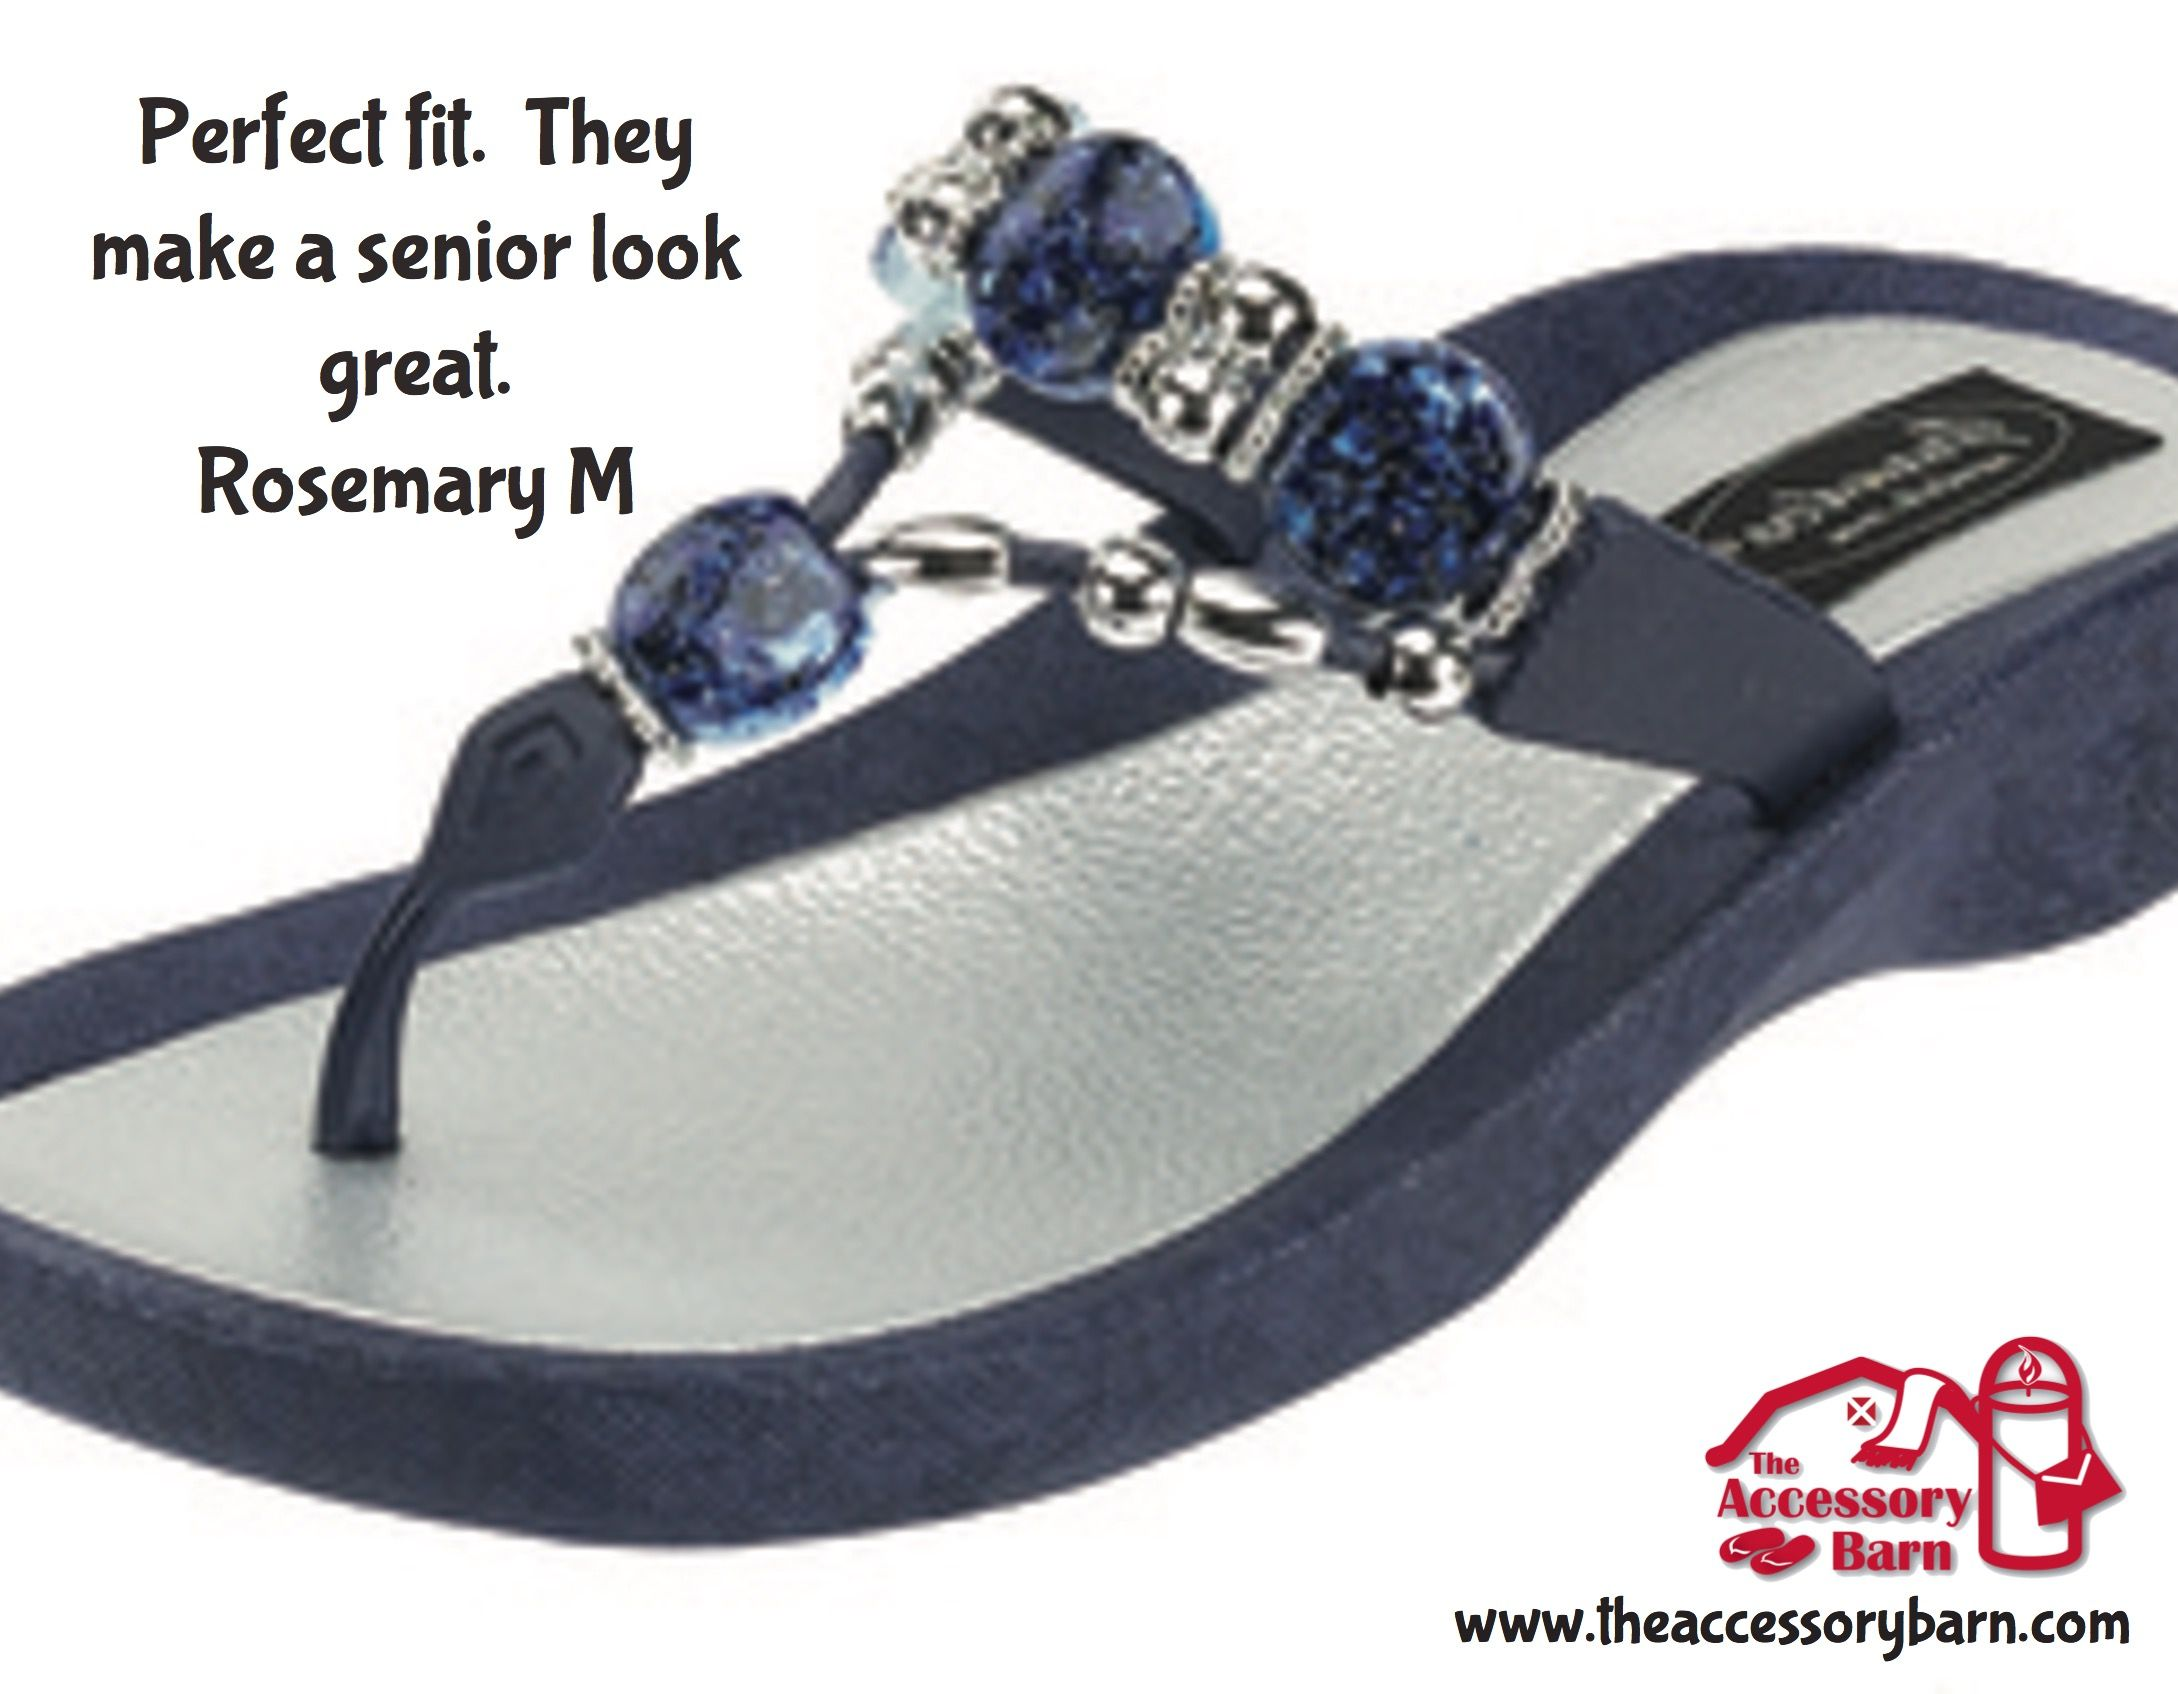 975cc0fac Largest selection of Grandco Sandals at The Accessory Barn - Jeweled and  Beaded Shoes for Women and Girls.